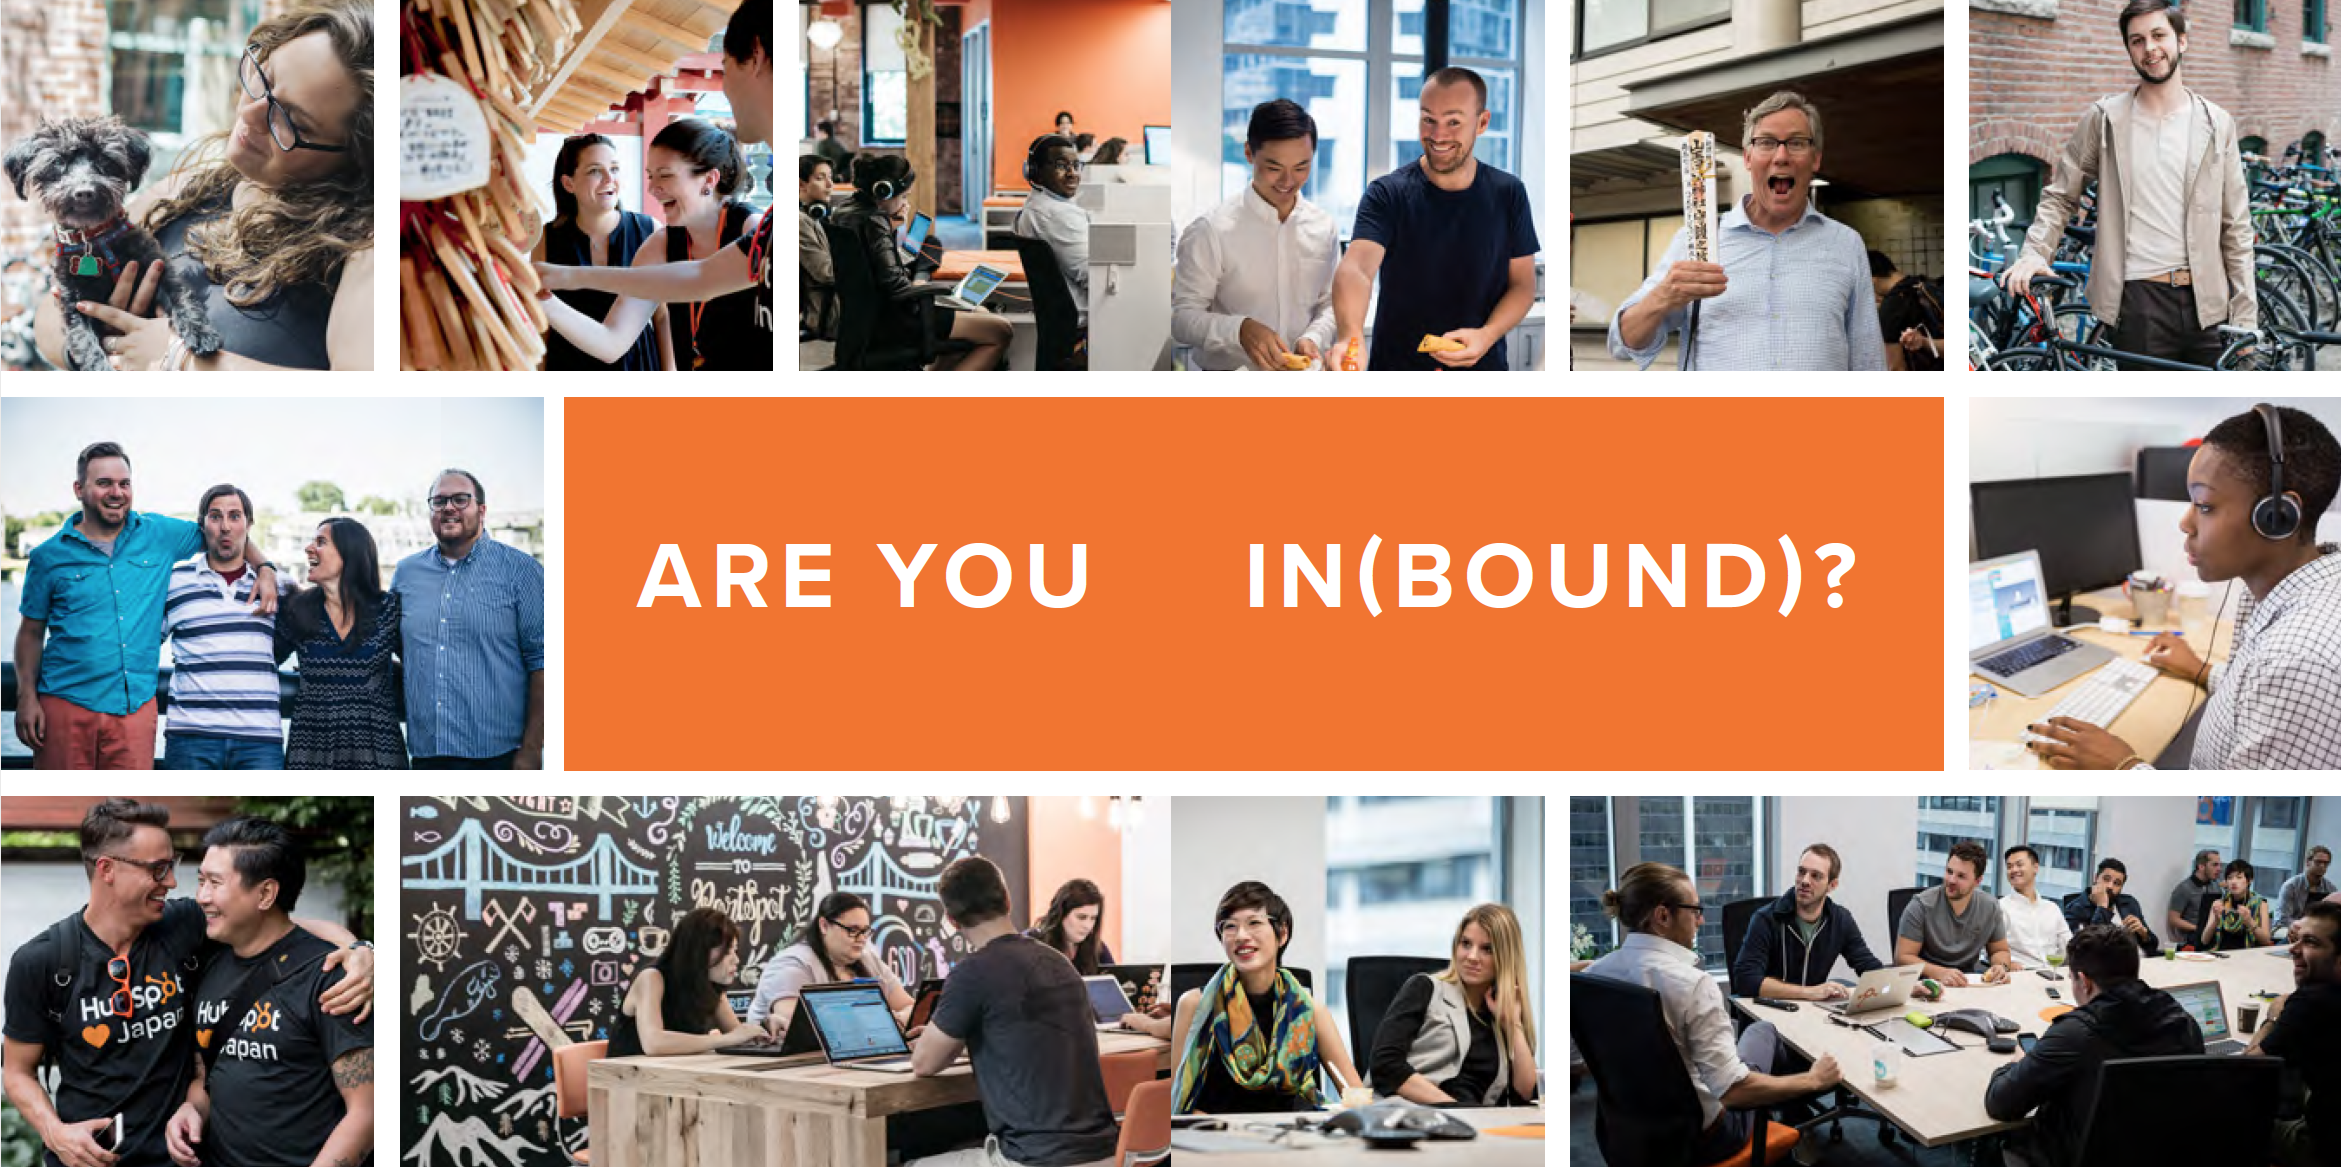 HubSpot Releases 10th Annual Year in Review, with a Focus on Flexibility